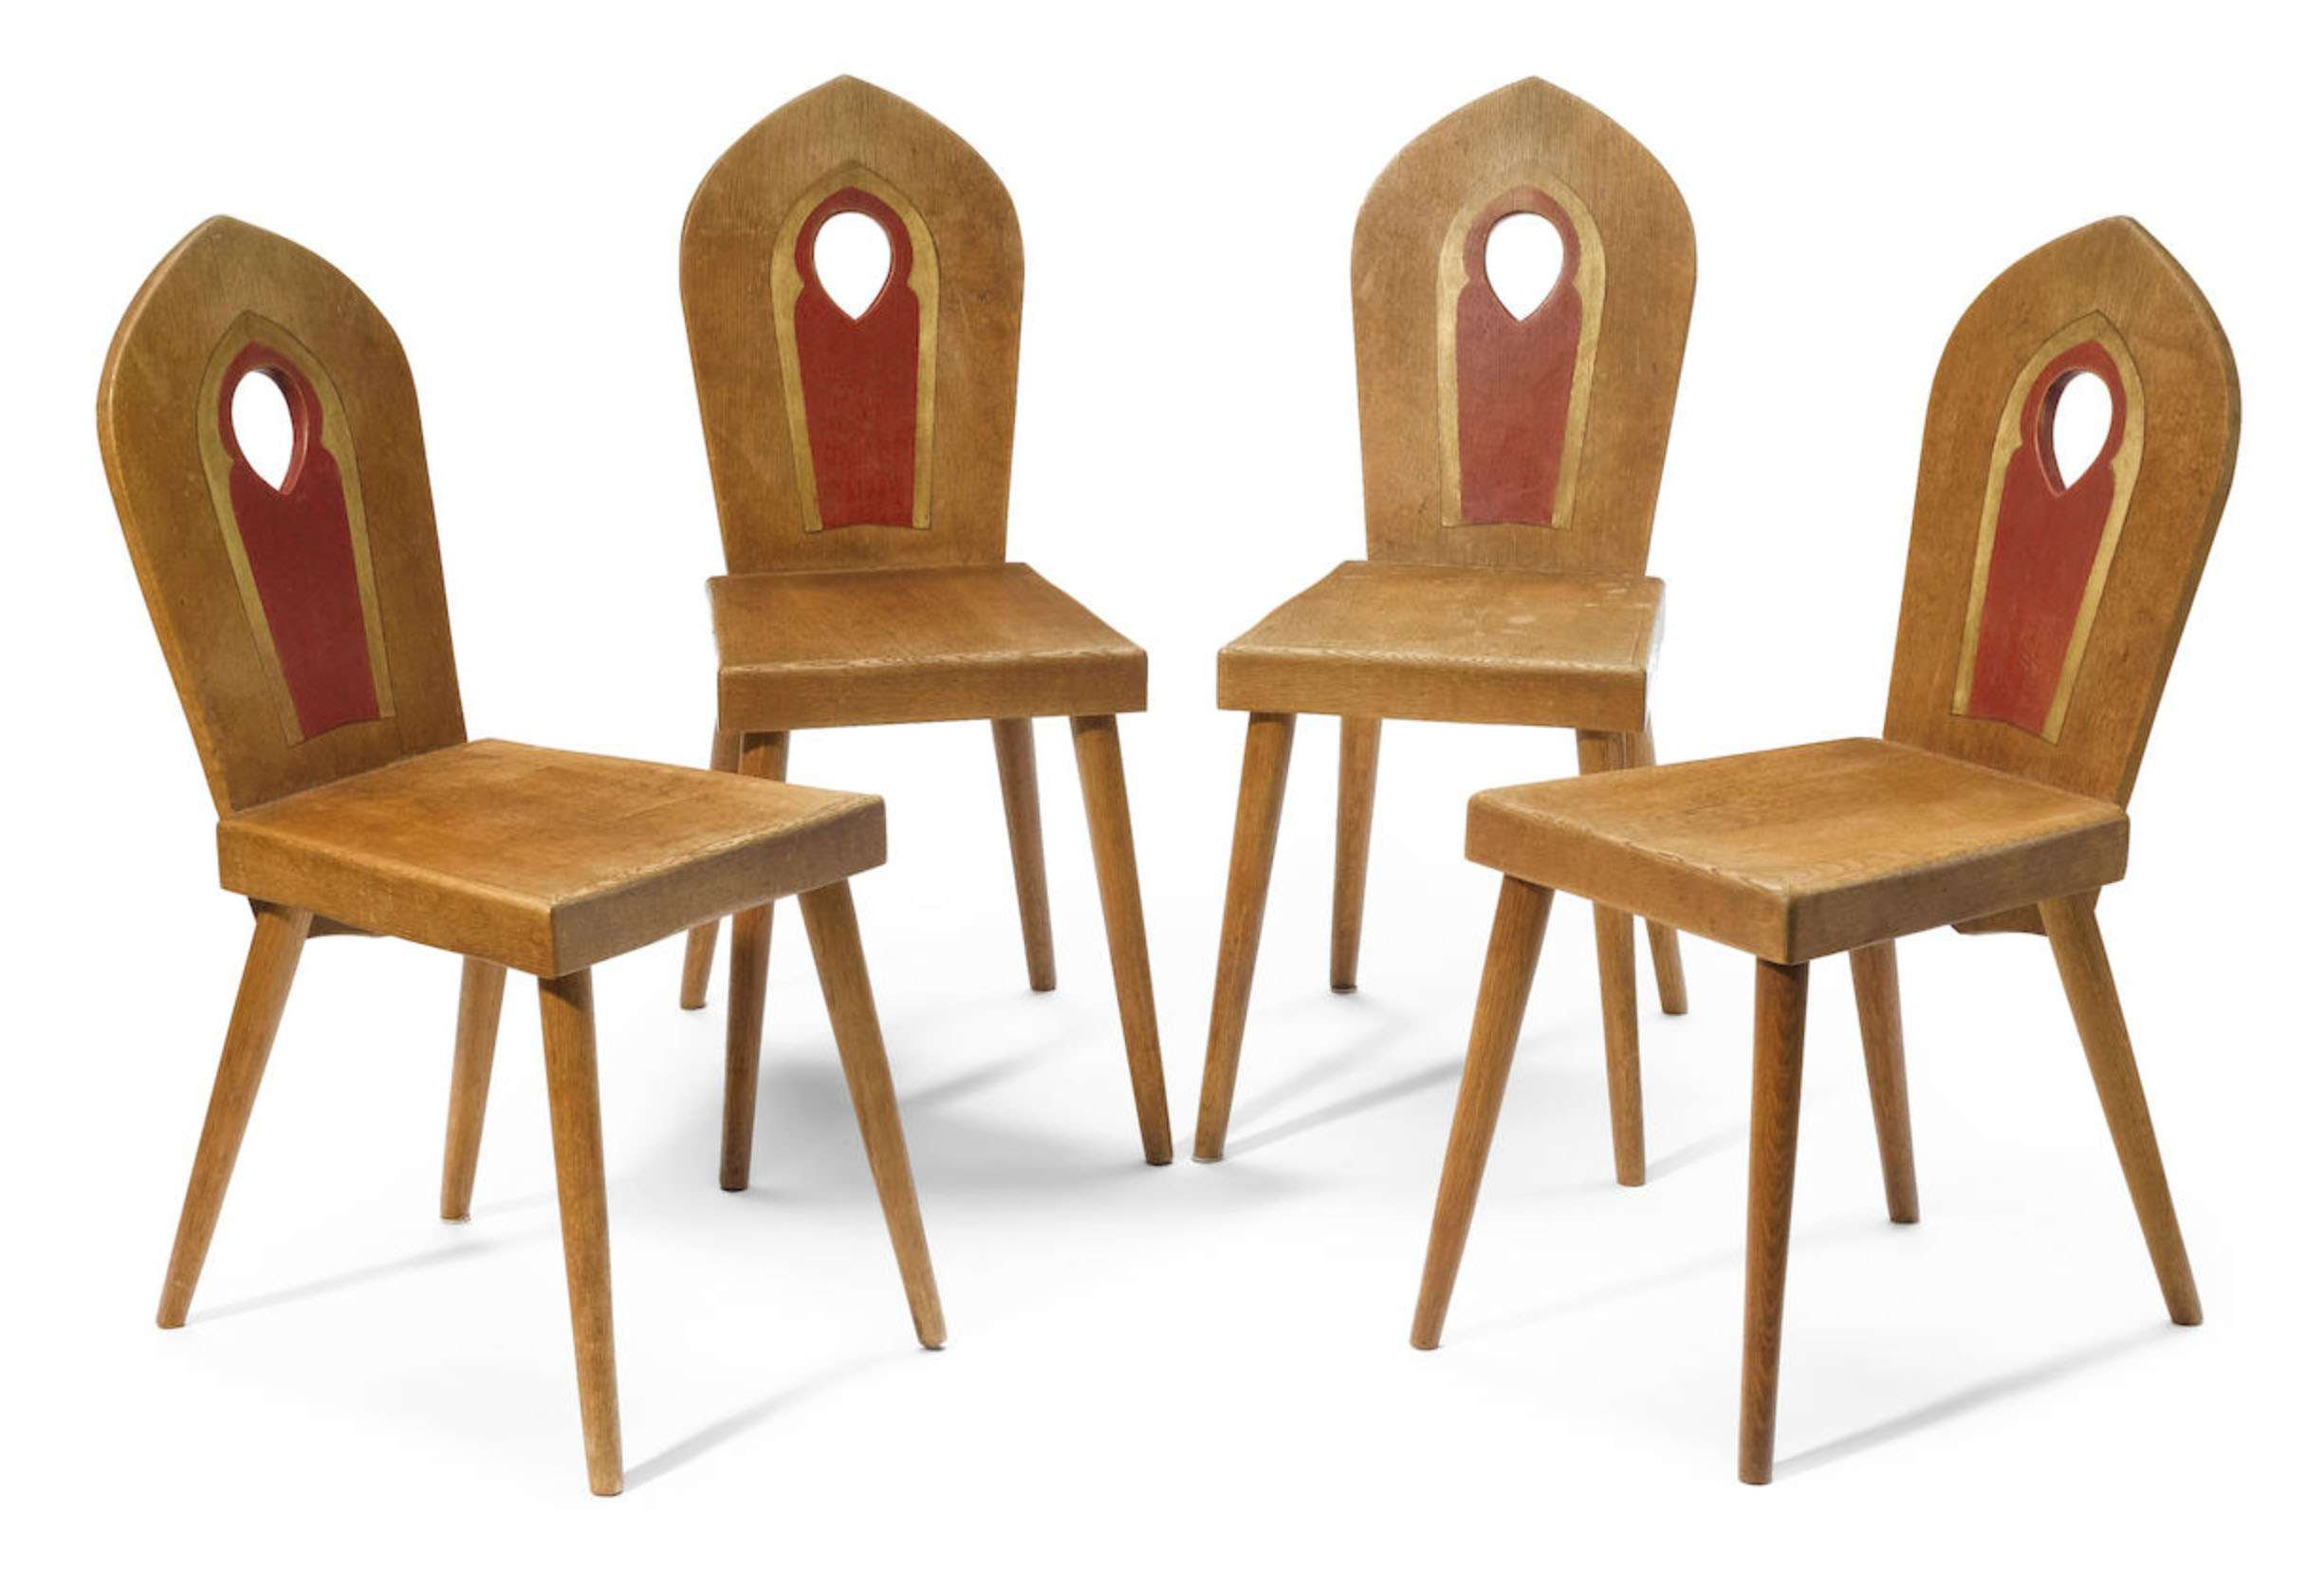 Set Of 4 Bernard Maybeck Oak Chairs C1923